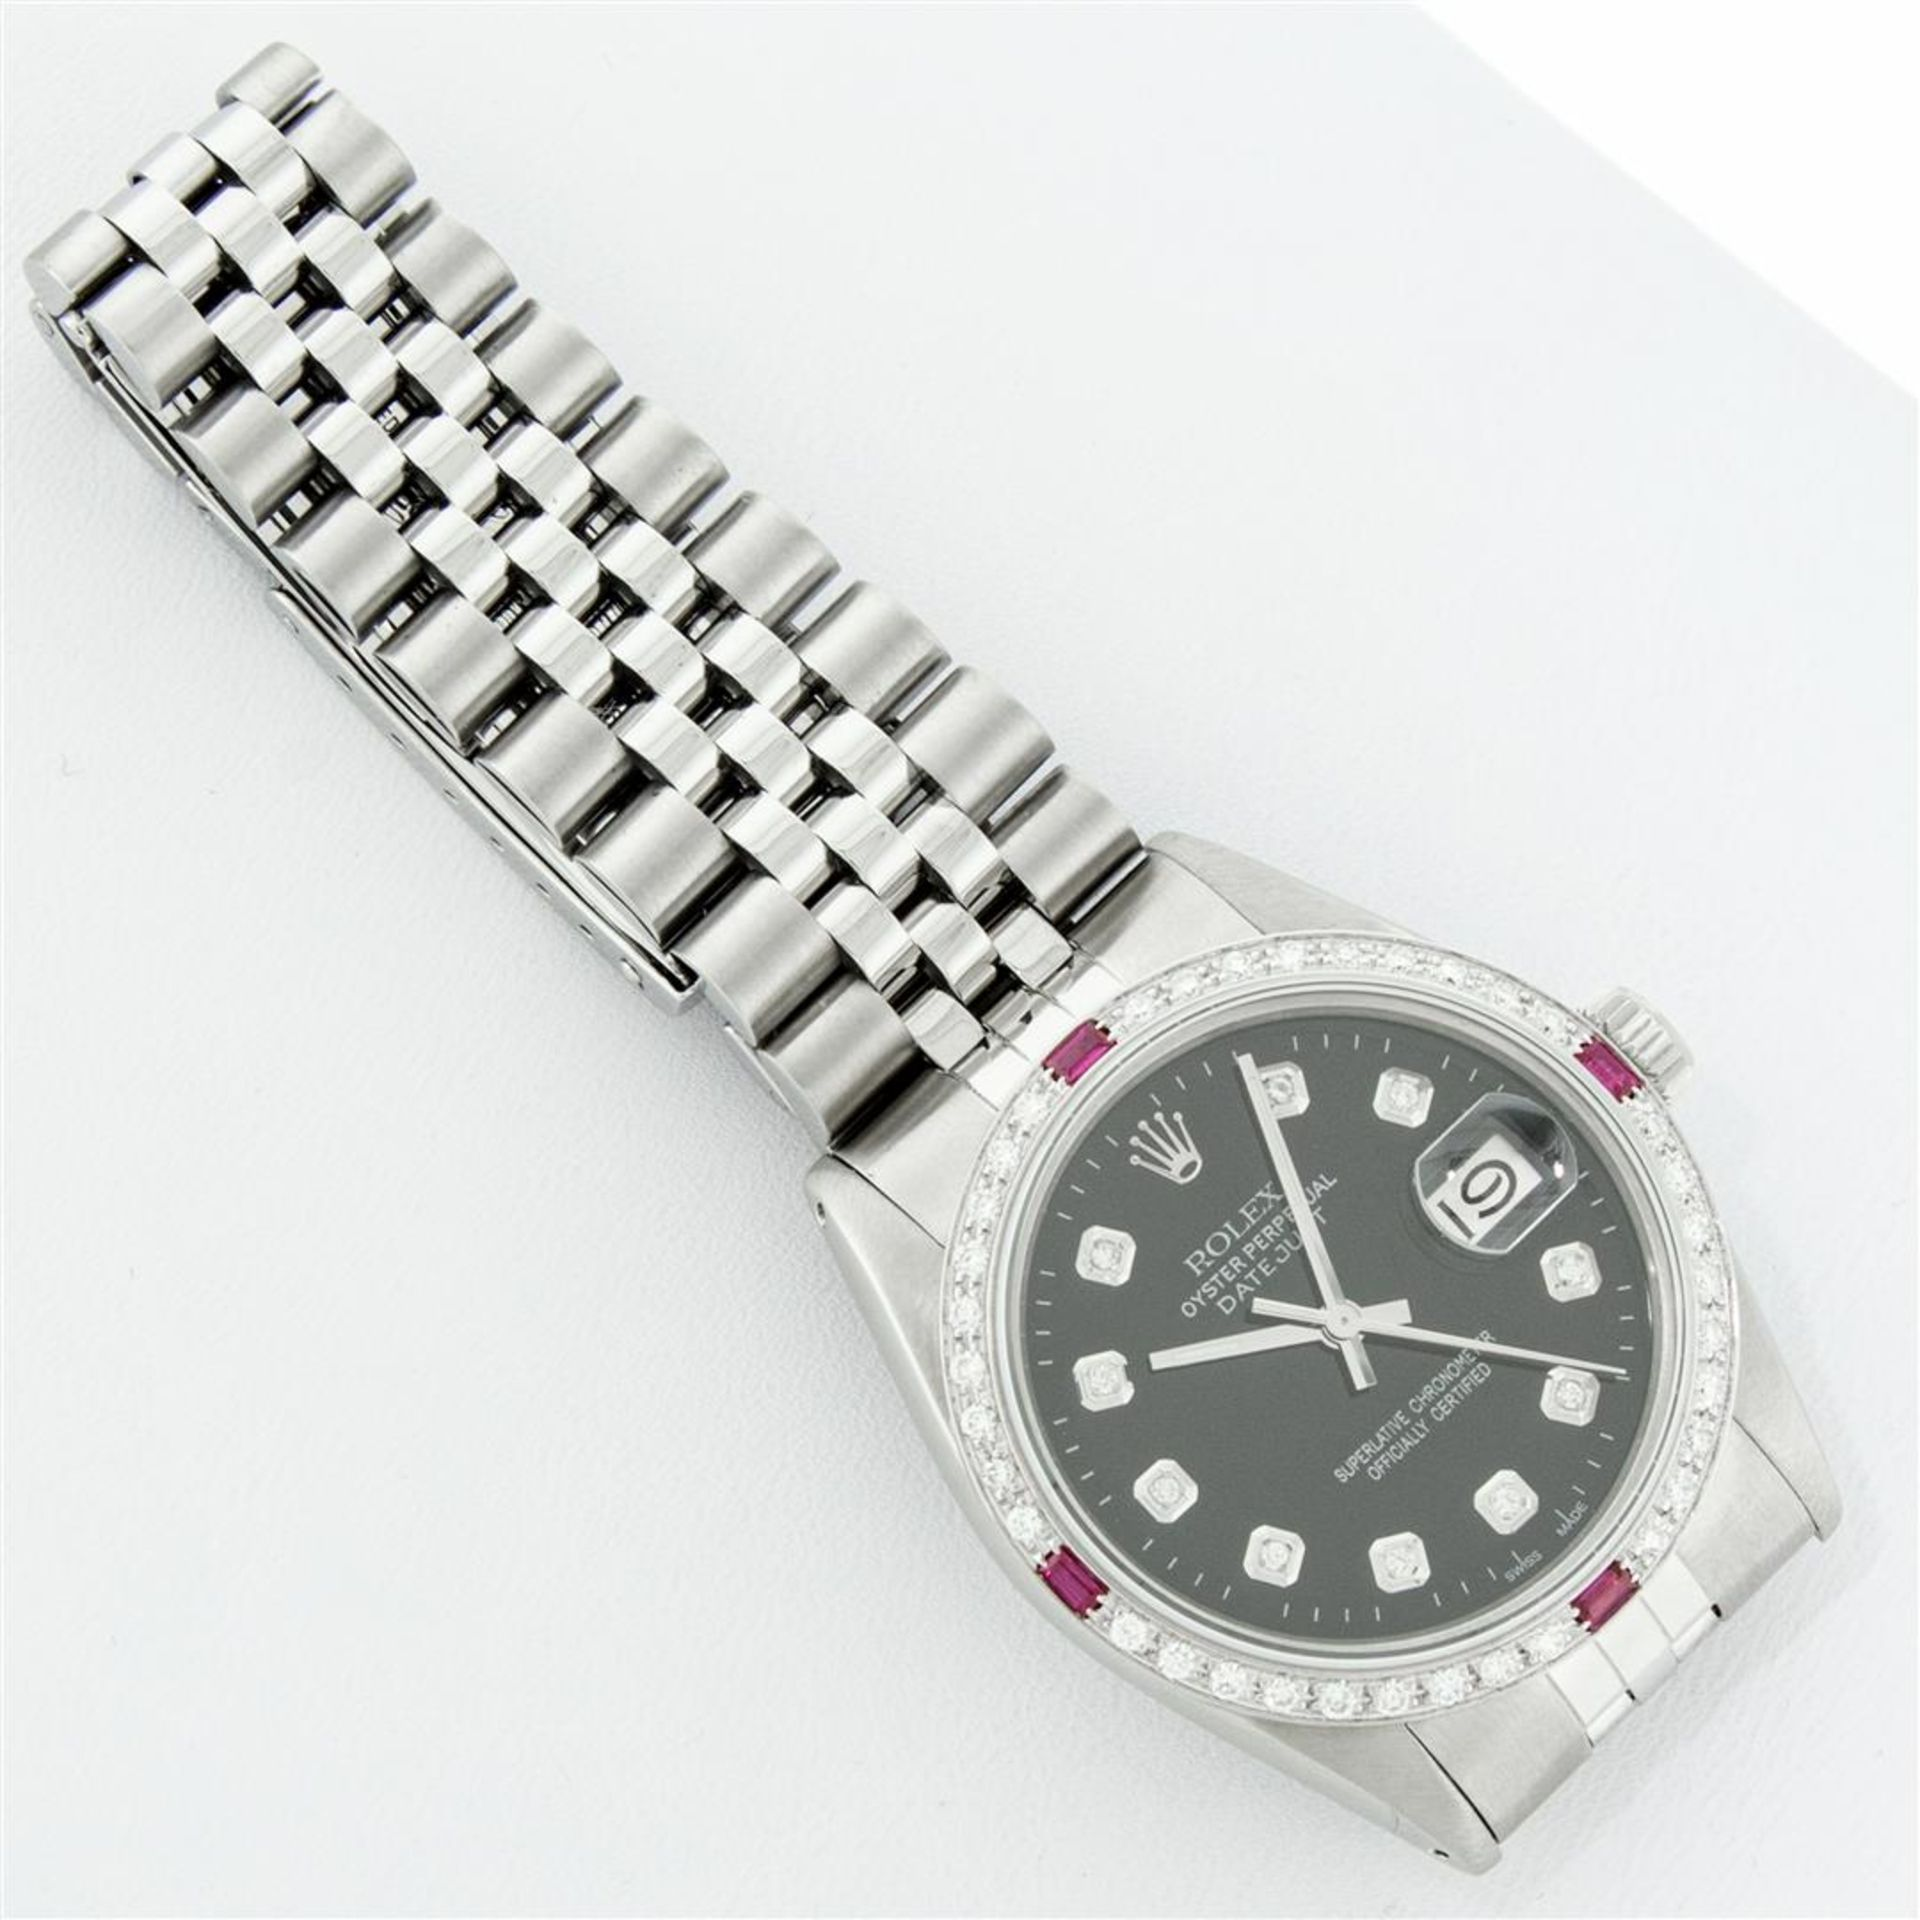 Rolex Mens Stainless Steel Black Diamond & Ruby 36MM Datejust Wristwatch Oyster - Image 7 of 9